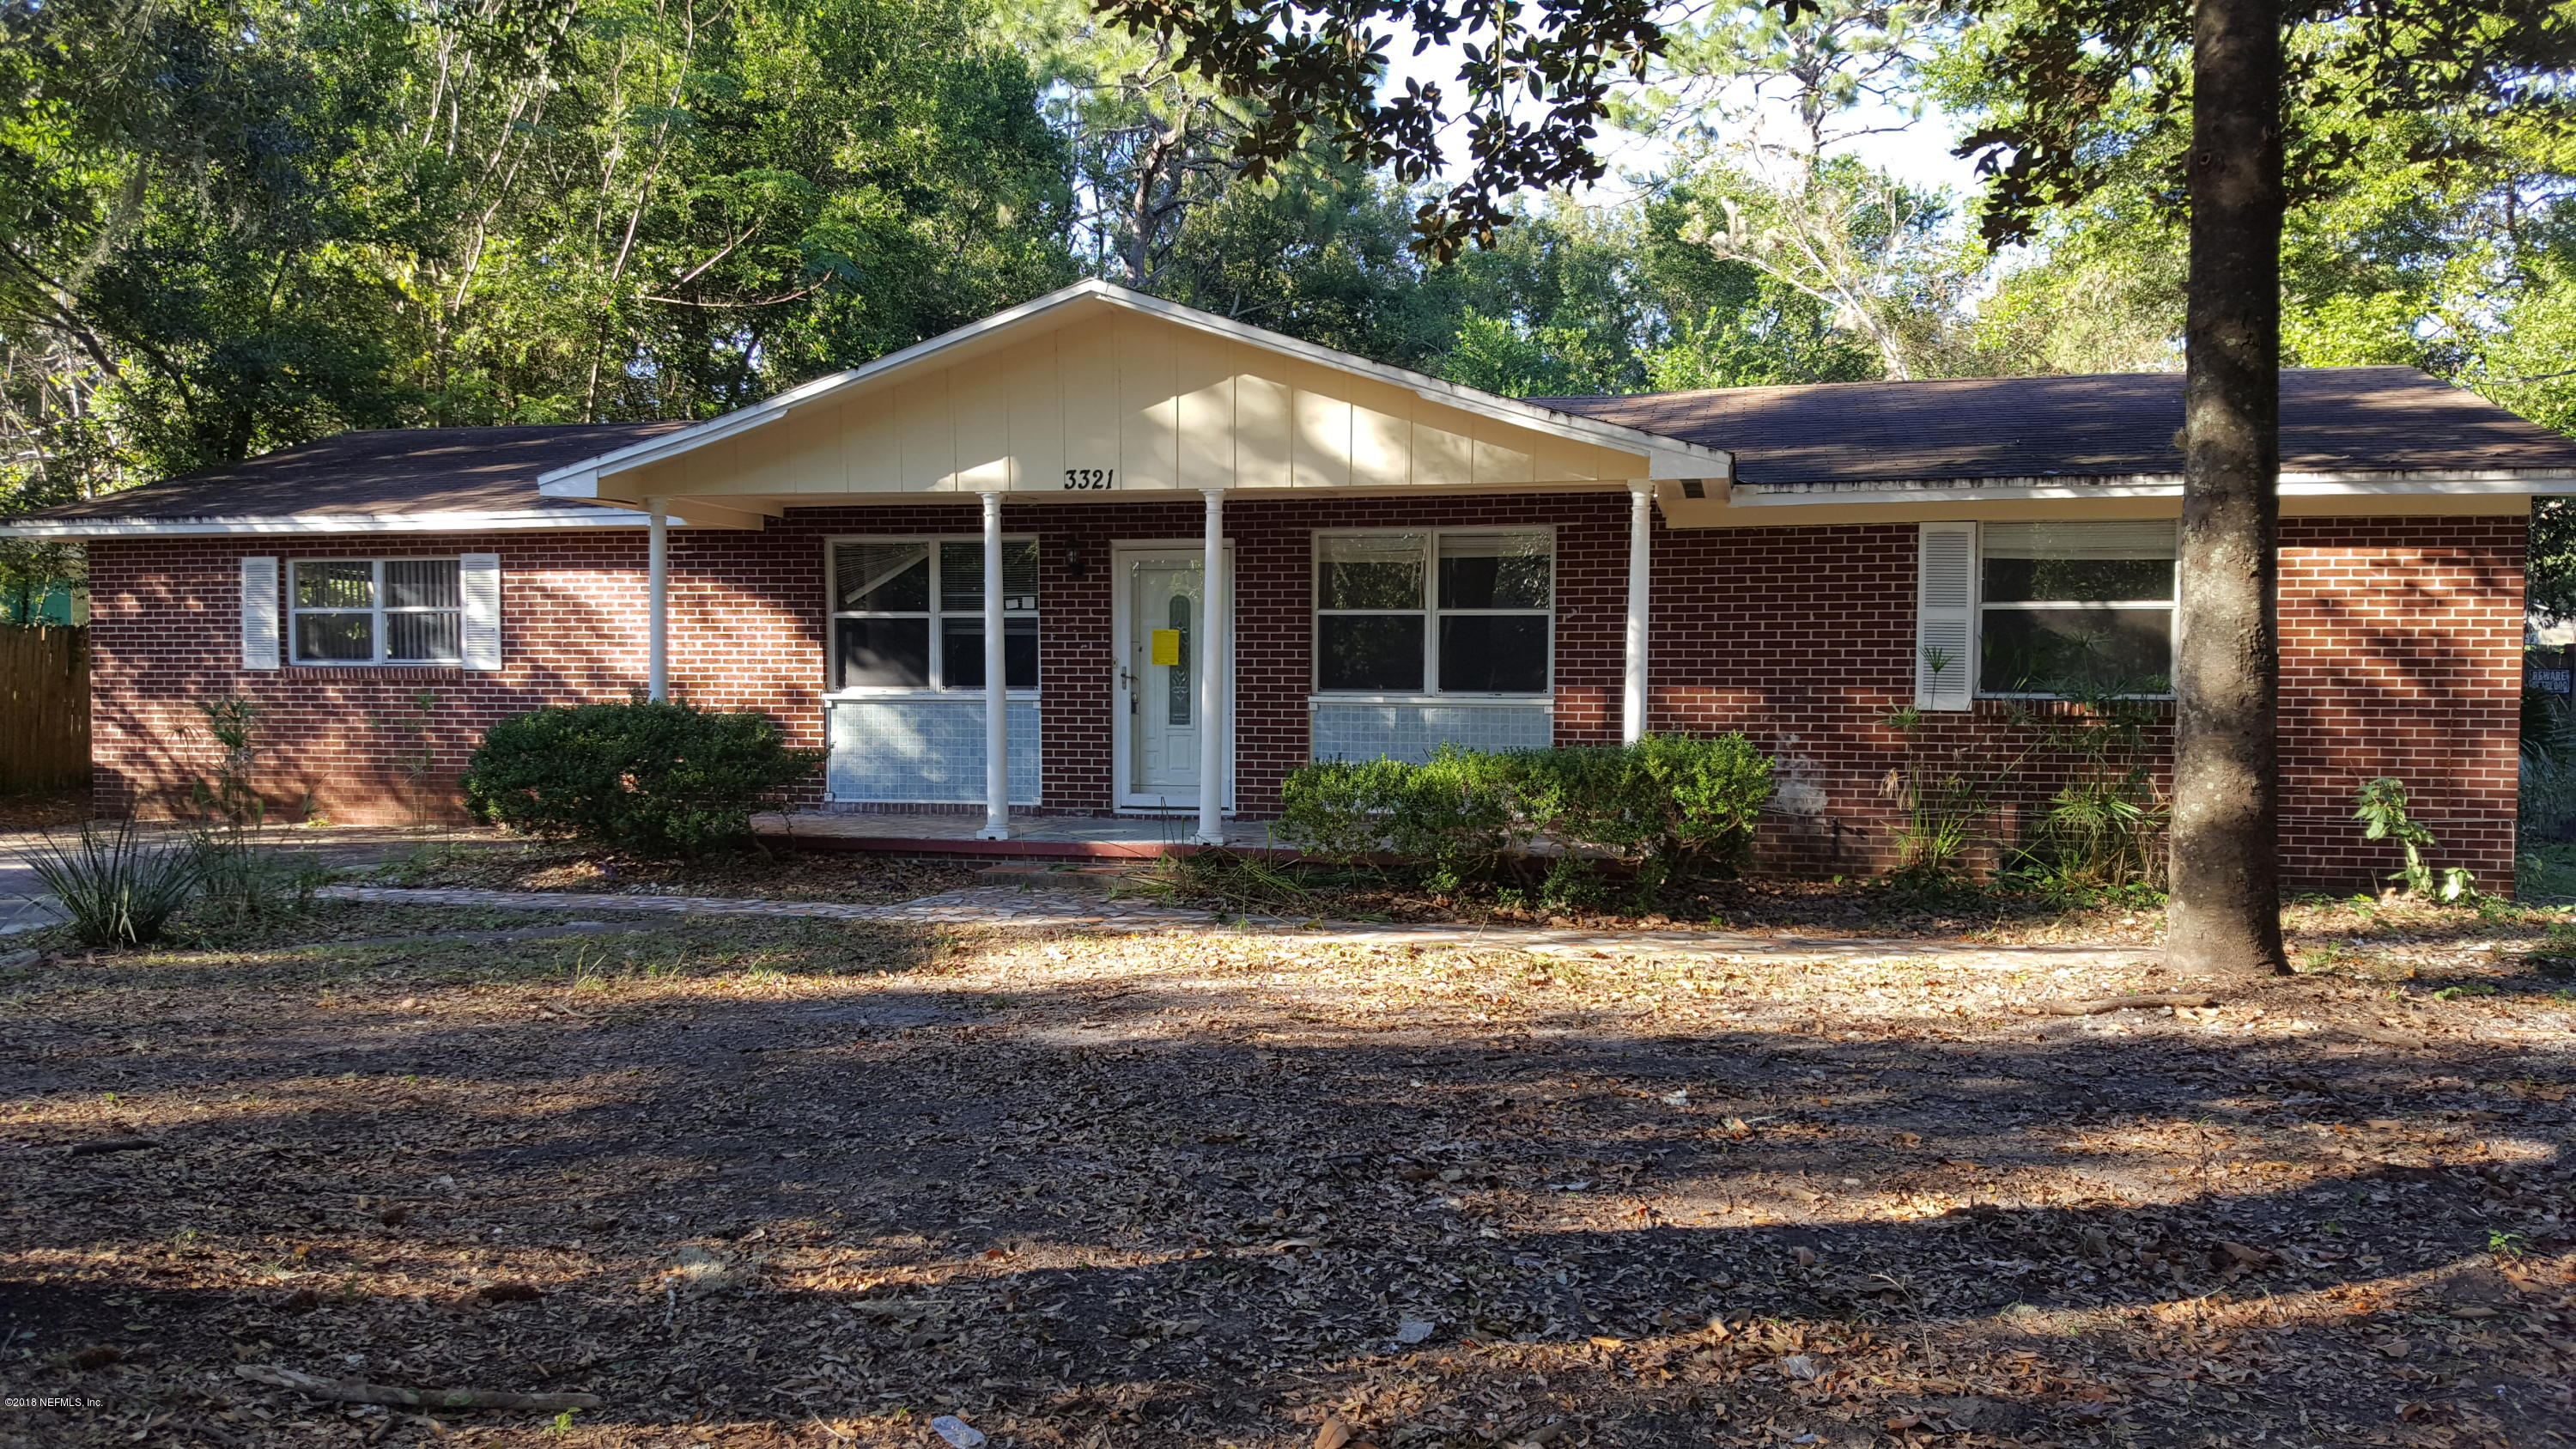 3321 HICKORYNUT, JACKSONVILLE, FLORIDA 32208, 4 Bedrooms Bedrooms, ,2 BathroomsBathrooms,Residential - single family,For sale,HICKORYNUT,964566